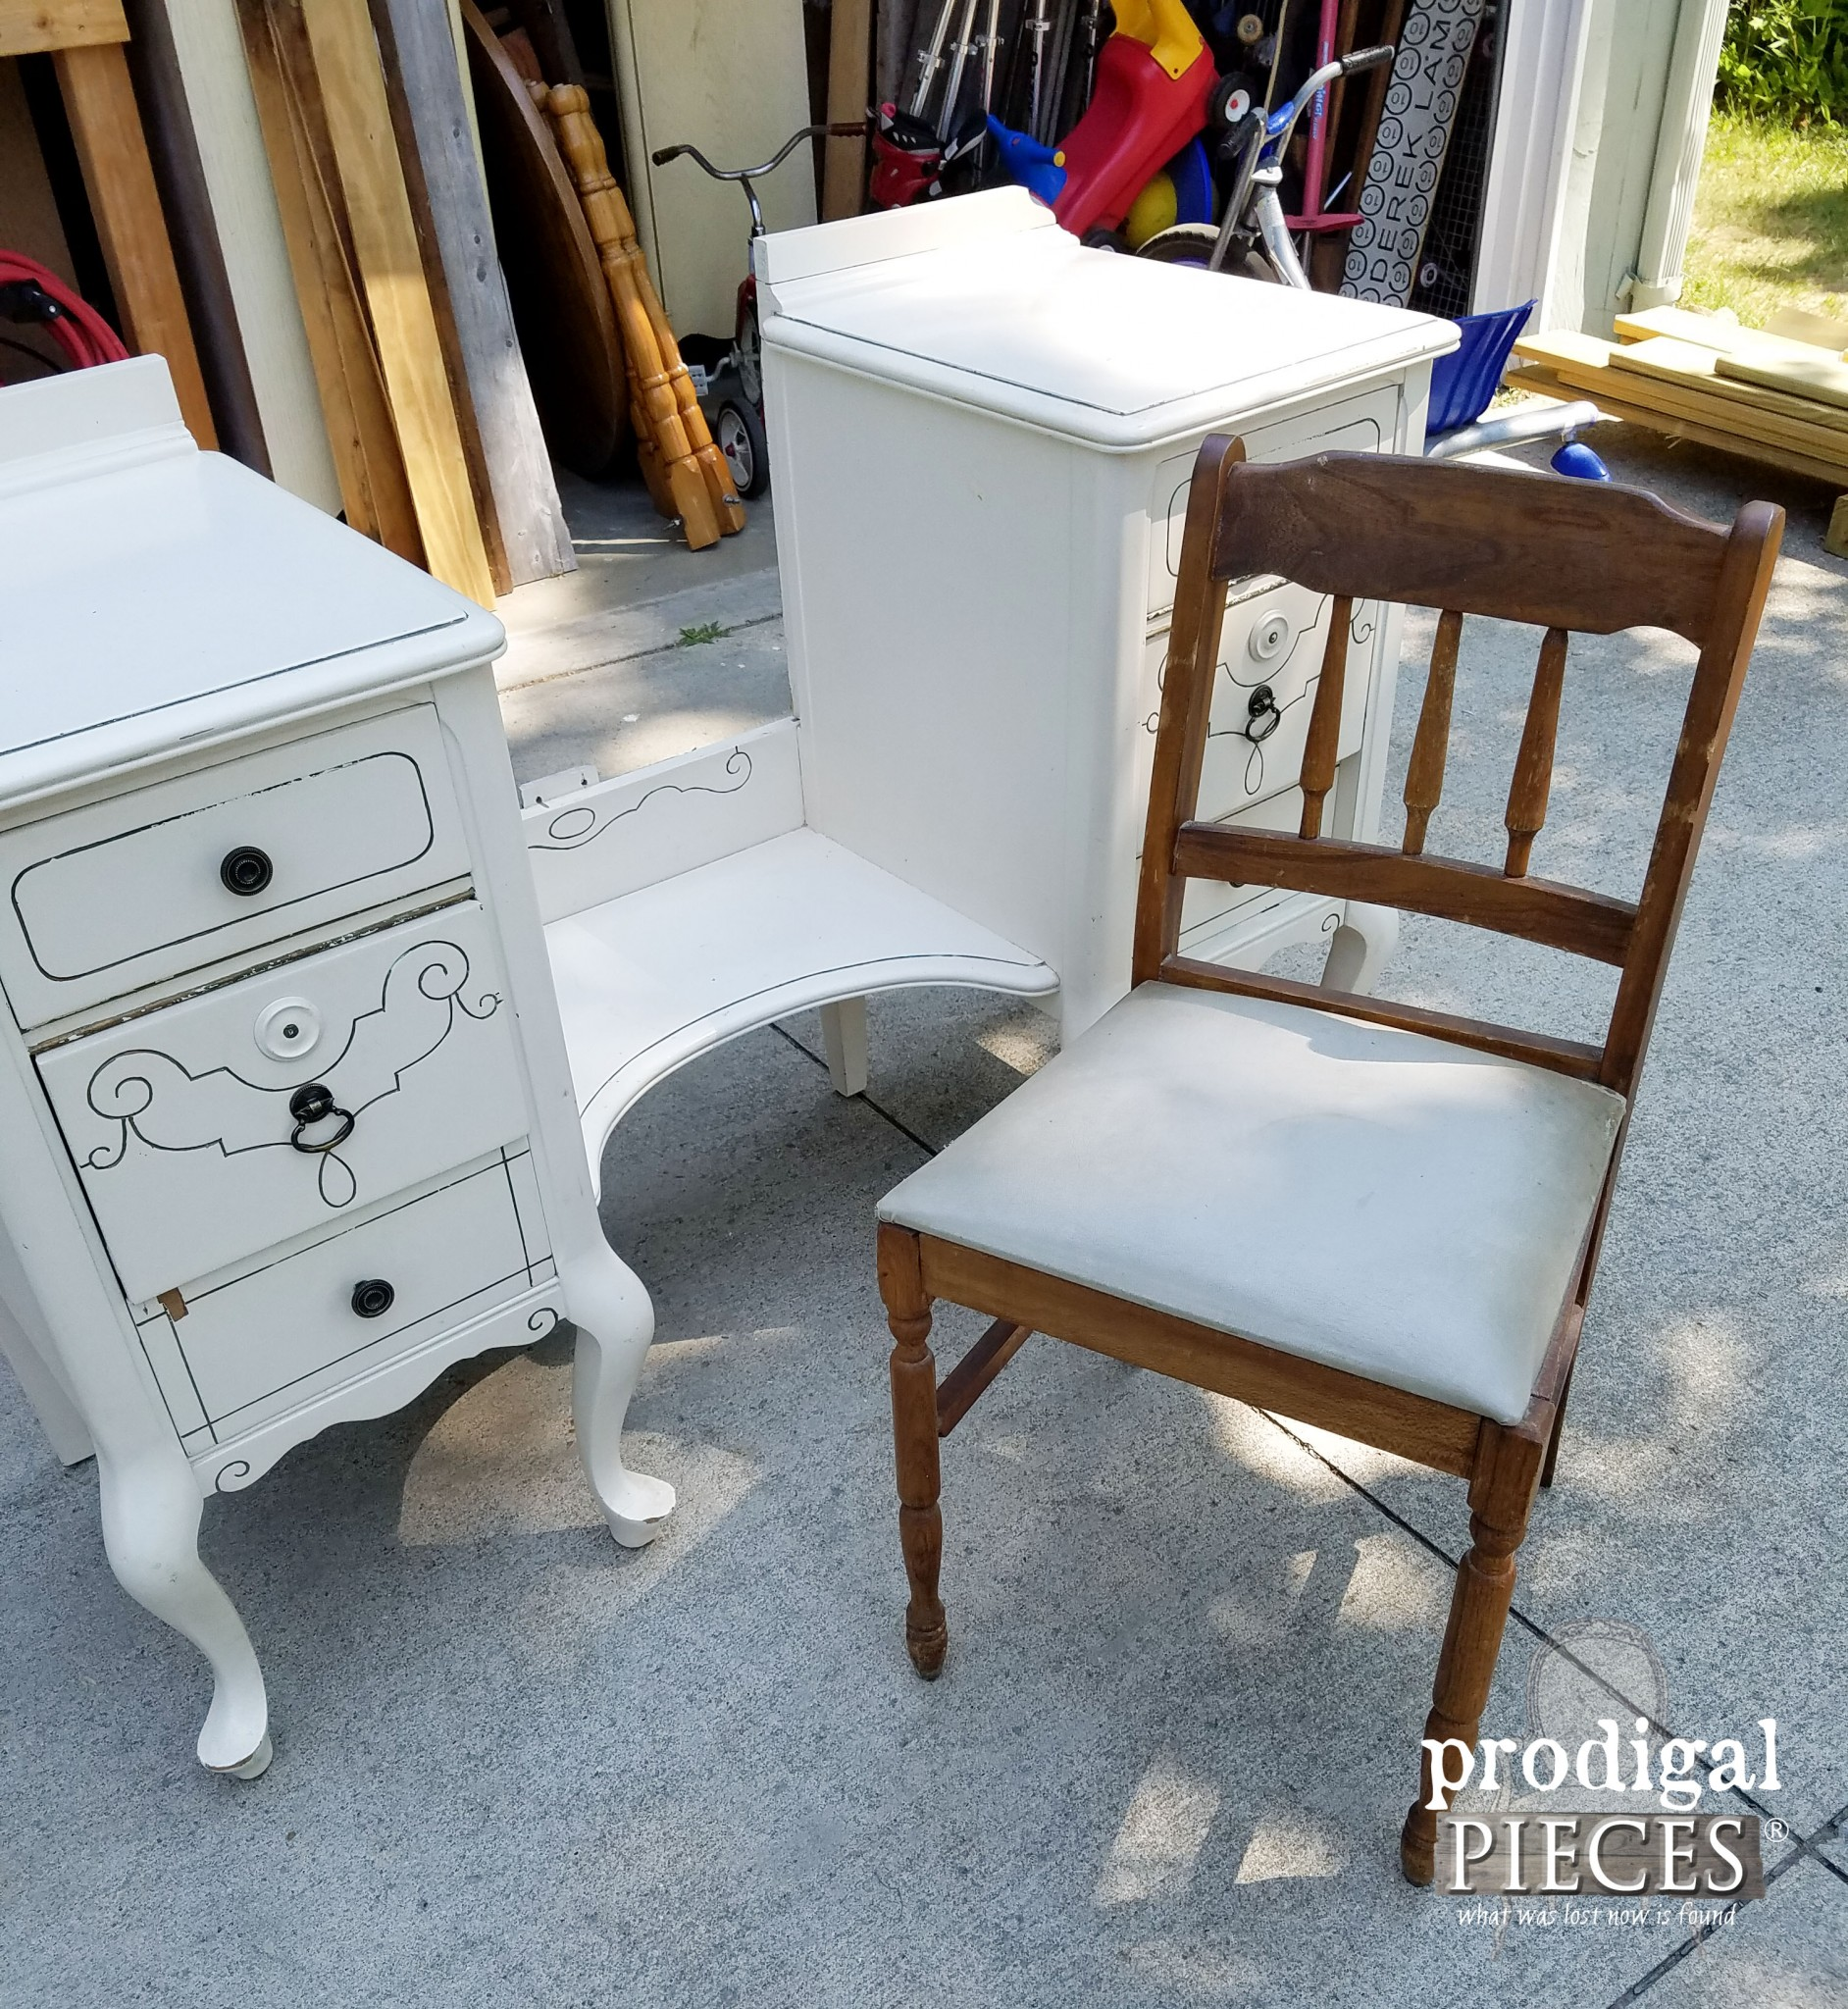 Antique Chair Paired with Vintage Vanity | Prodigal Pieces | www.prodigalpieces.com